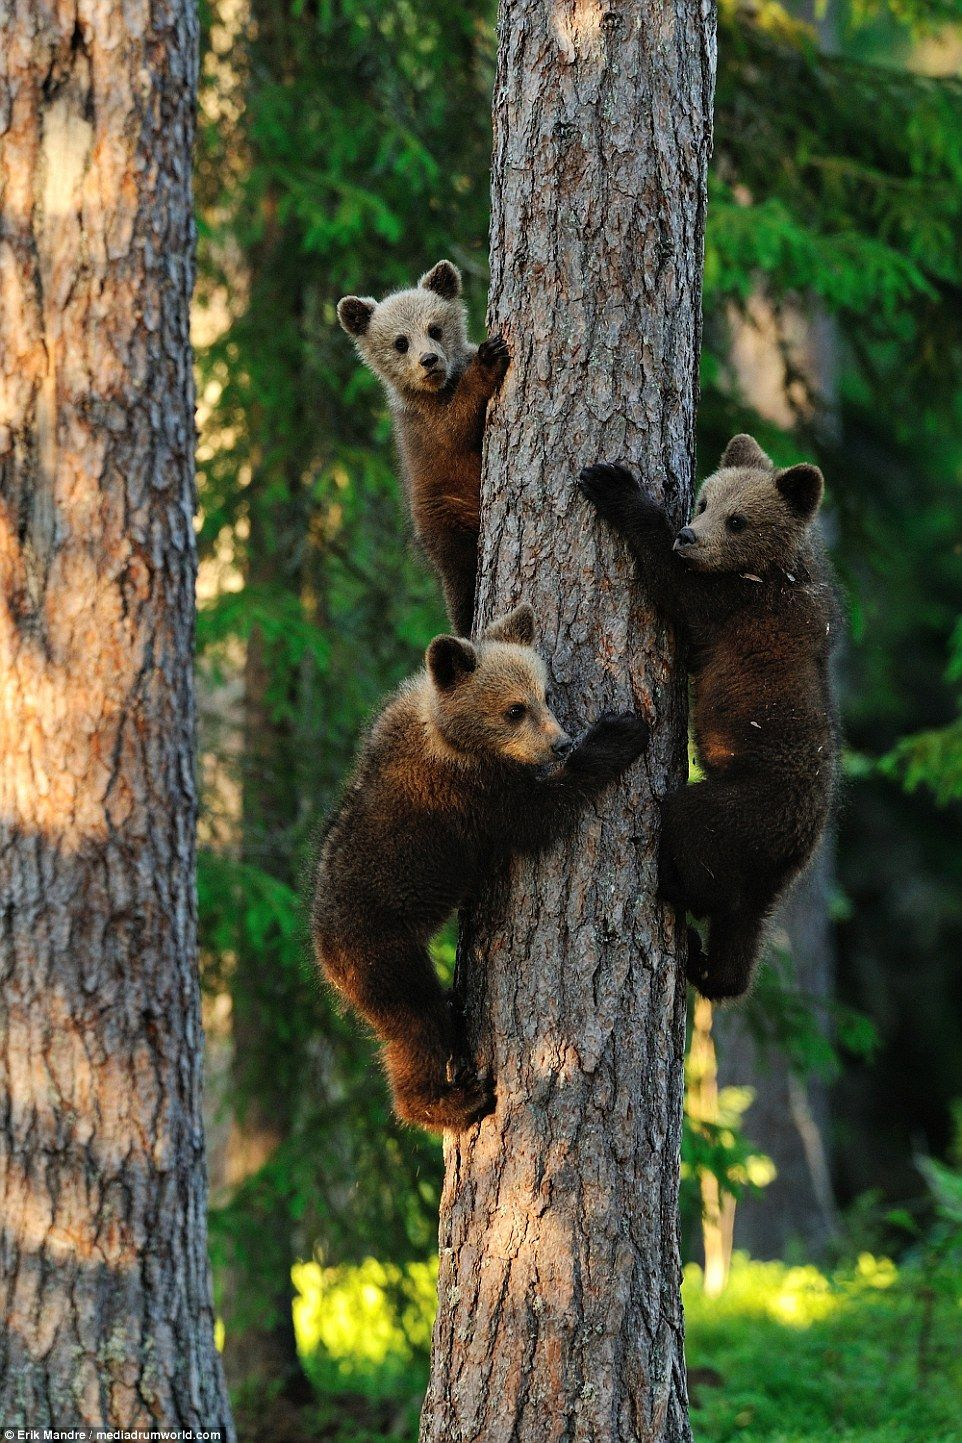 Mummy bear watches as her three adorable bear cubs climb and play #bears